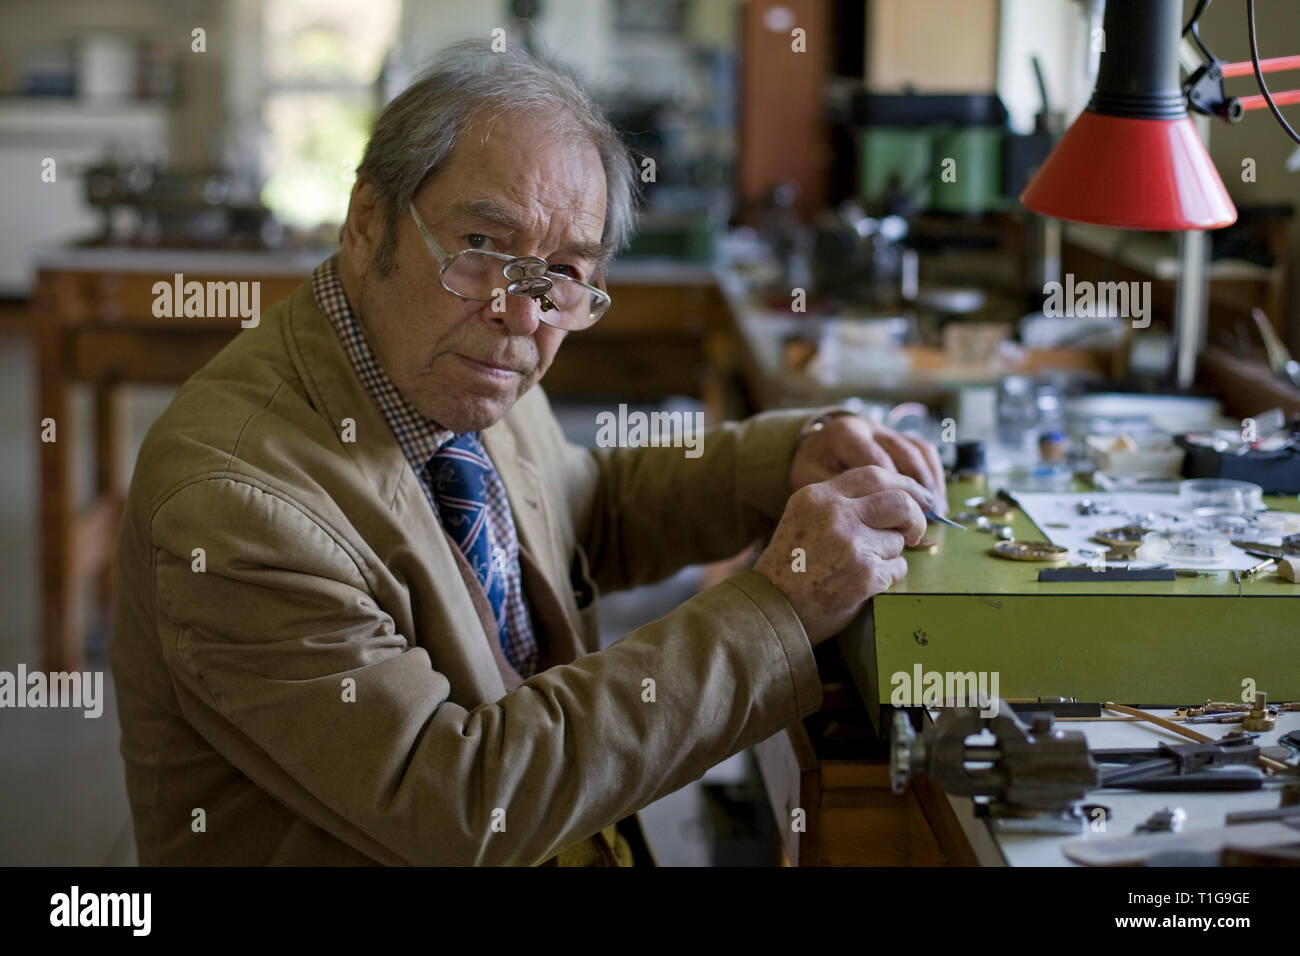 Master horologist George Daniels, pictured in his workshop in the grounds of his home in Ramsey, Isle of Man. Mr Daniels has been making watches for over 60 years and is famous for creating the co-axial escapement. He is one of the few living watchmakers who can create a complete watch by hand; including the case and dial and he is a former Master of the Clockmakers' Company of London. - Stock Image